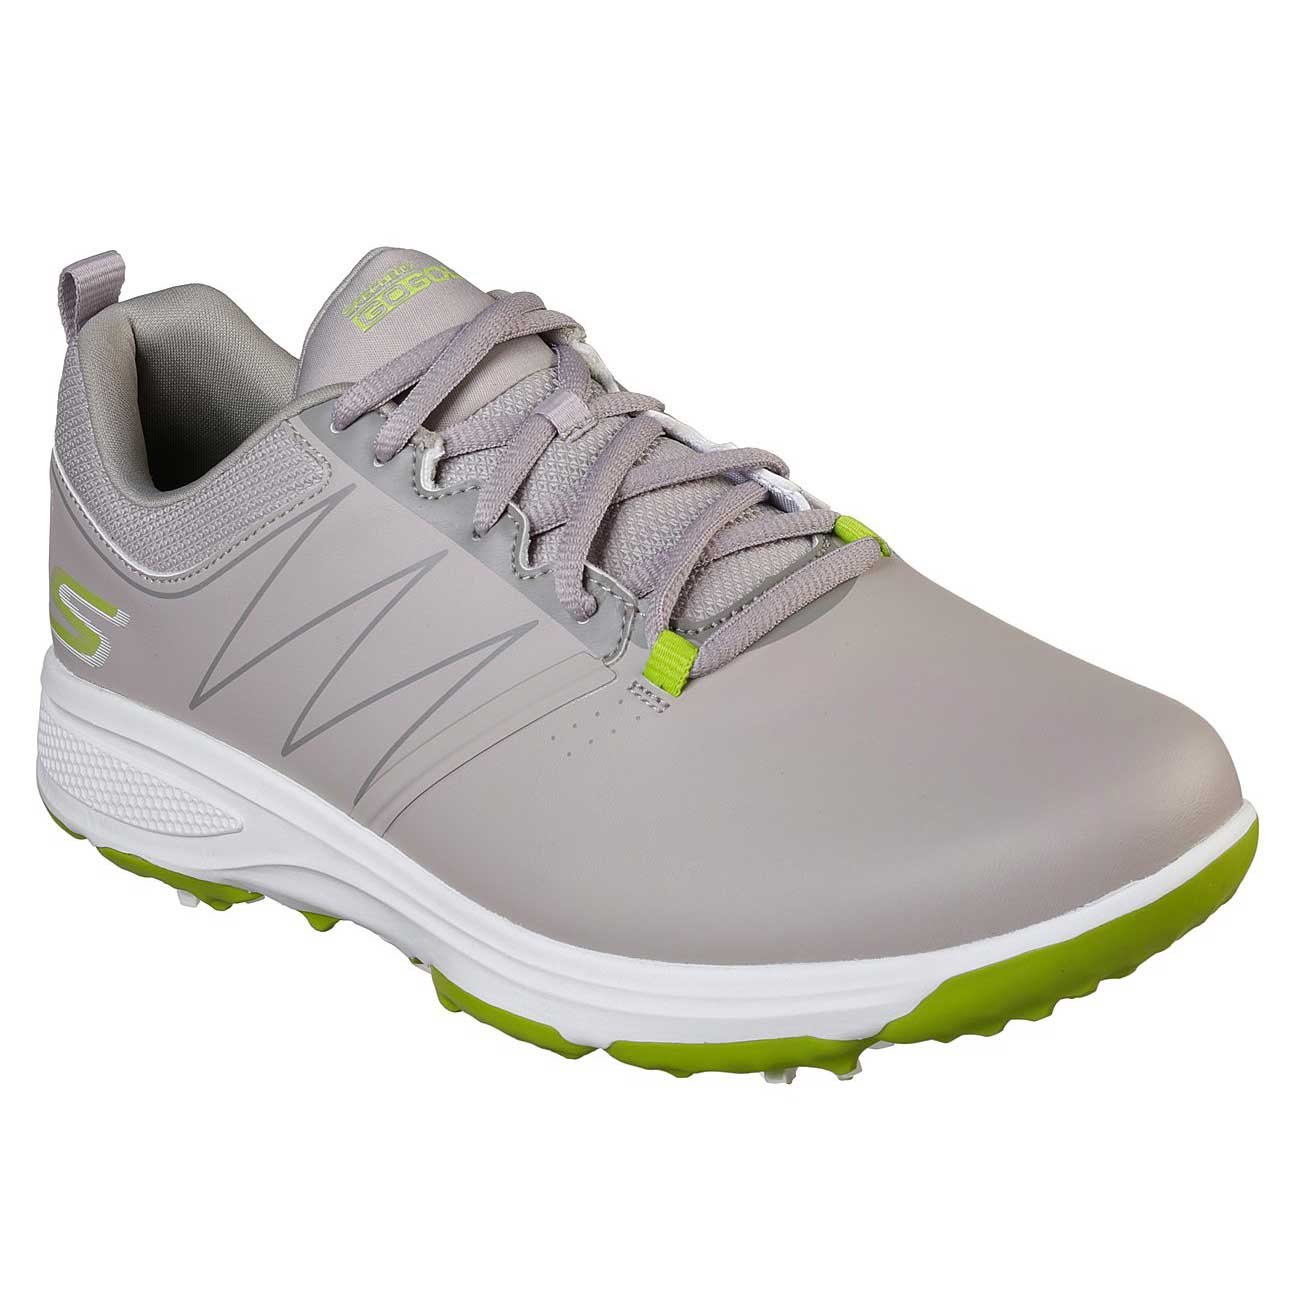 Skechers Men's Go Golf Torque Grey/Lime Golf Shoe